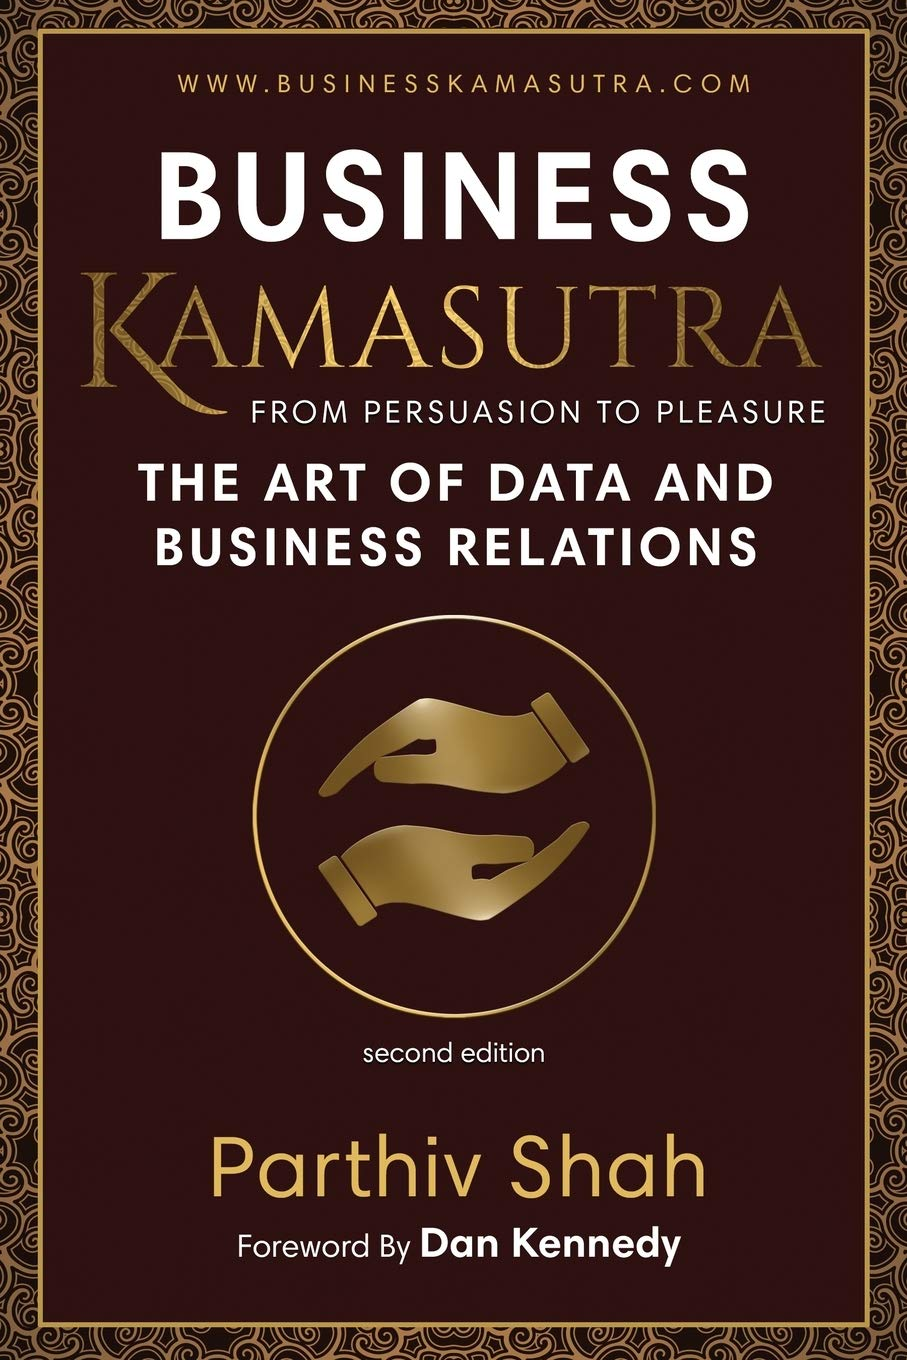 Business Kamasutra: From Persuasion to Pleasure The Art of Data and Business Relations